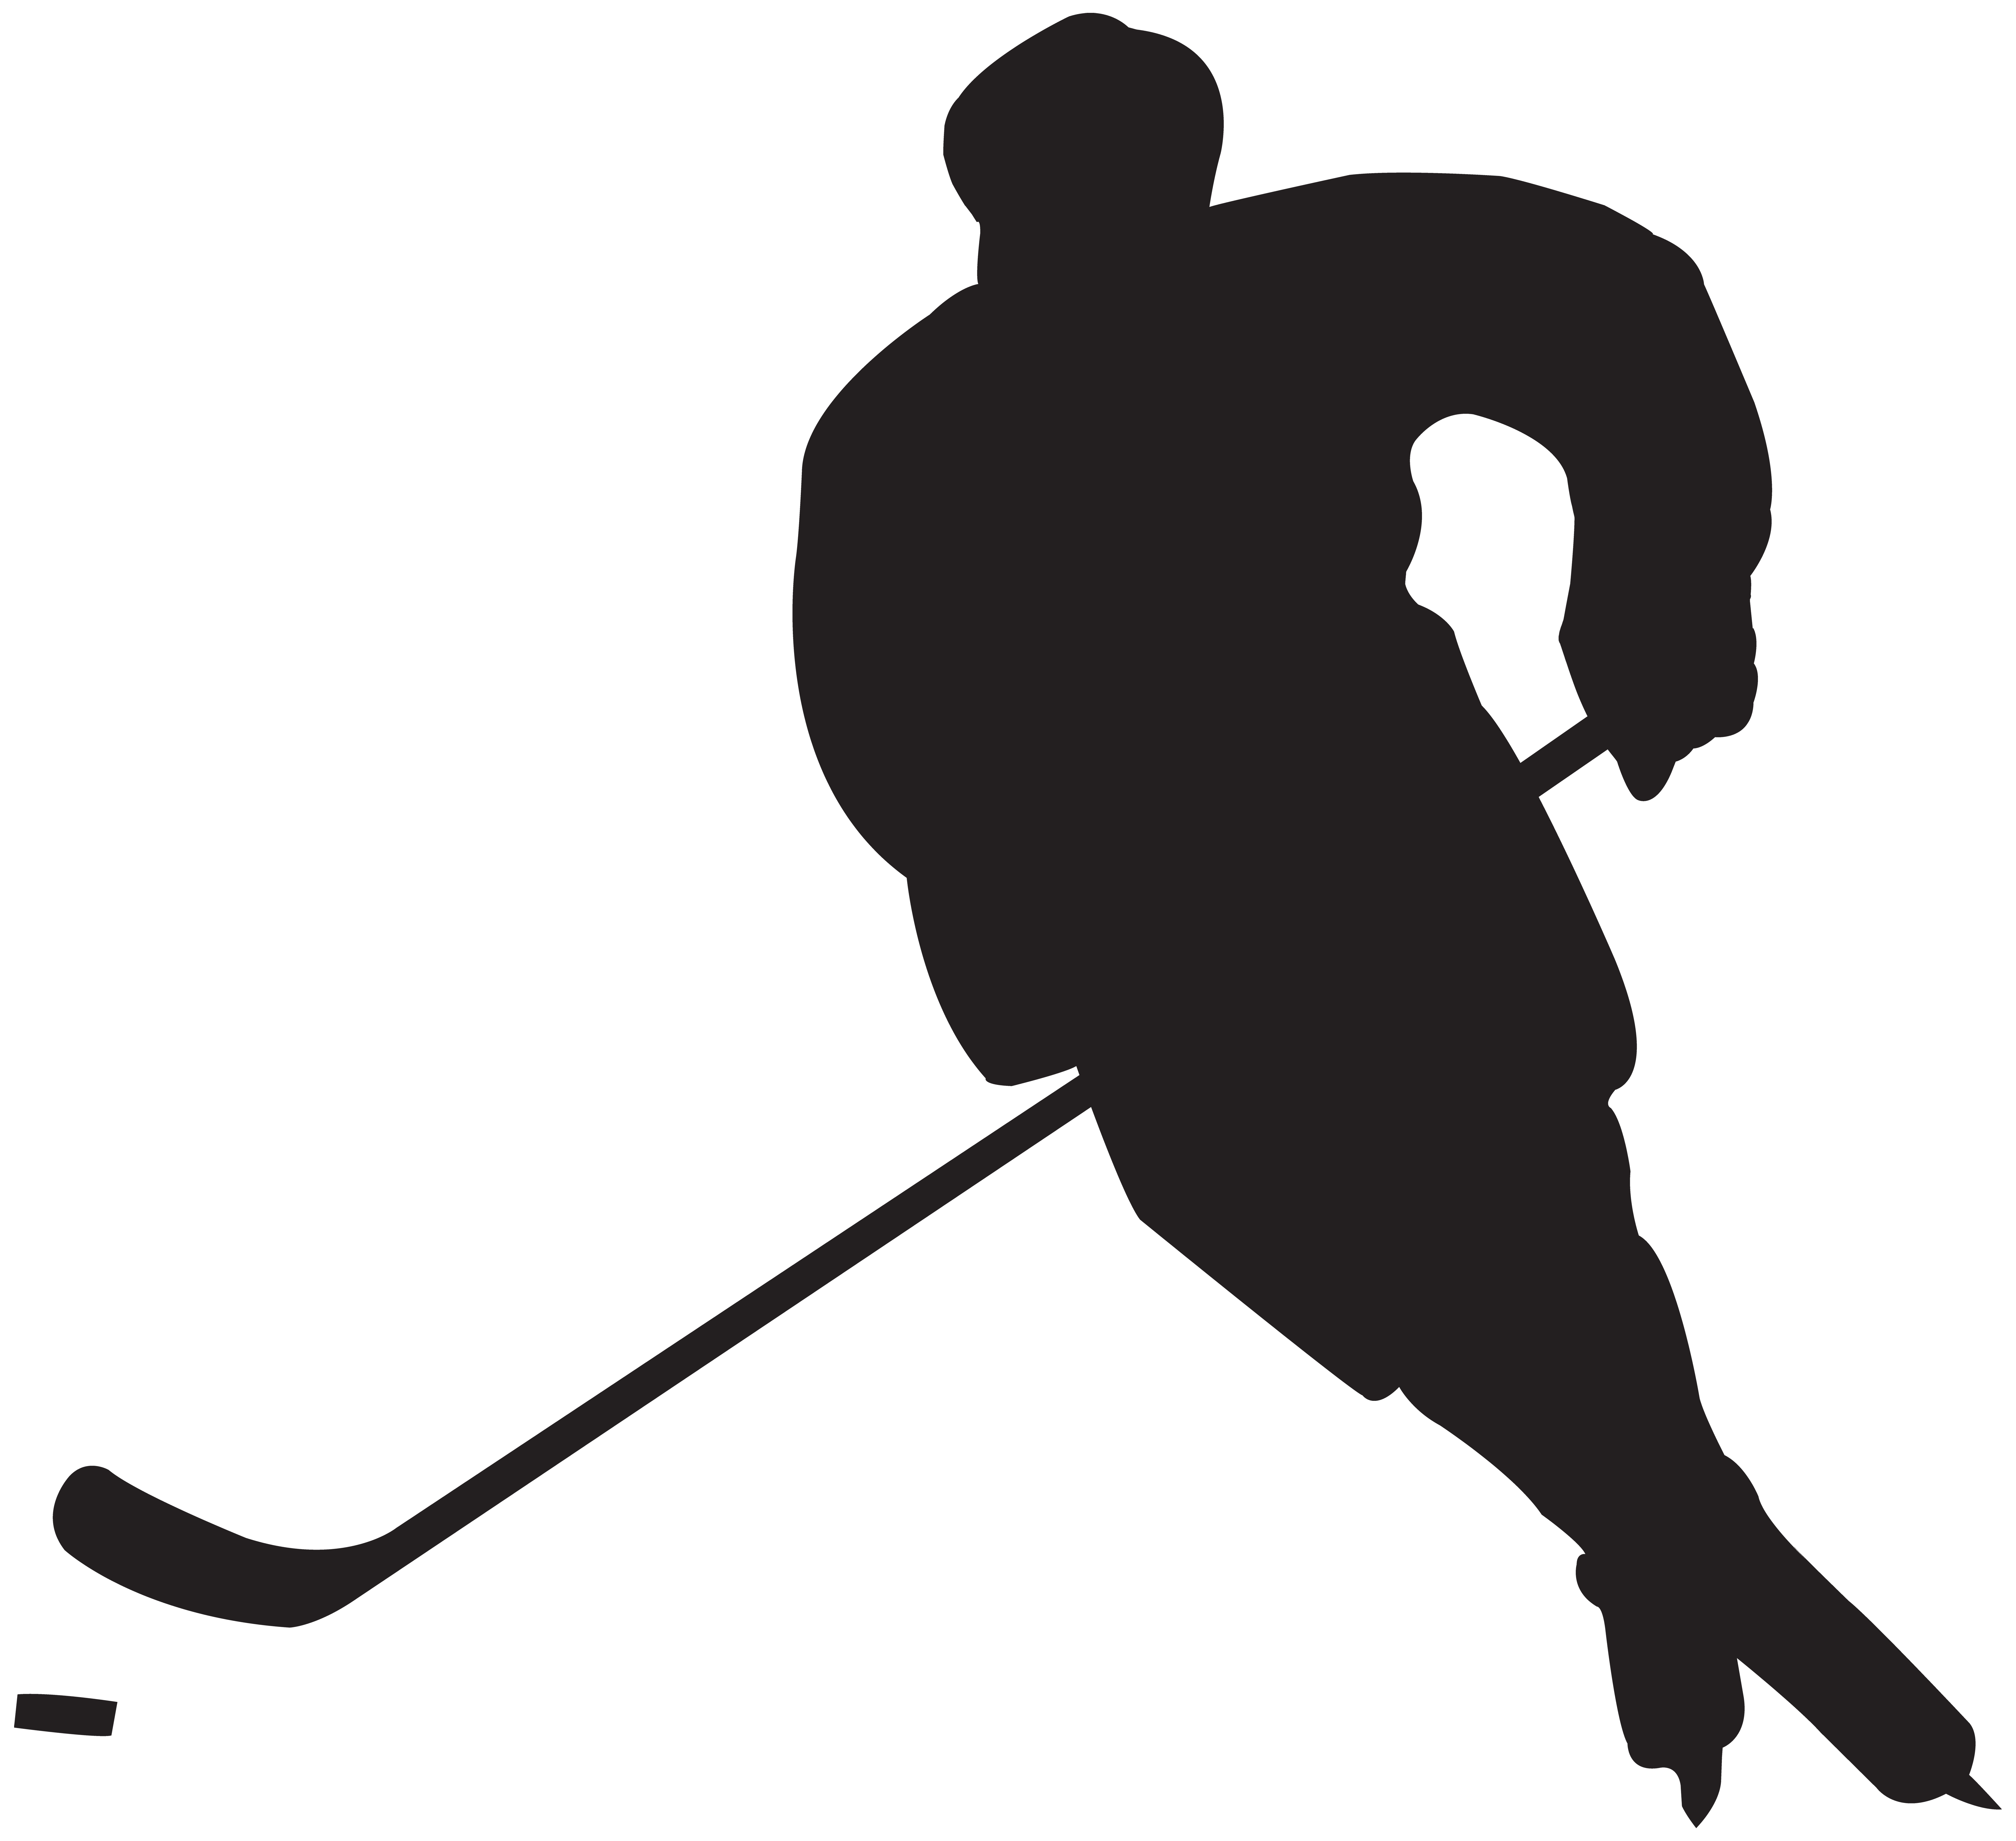 clip art transparent download Hockey clipart. Player silhouette png clip.